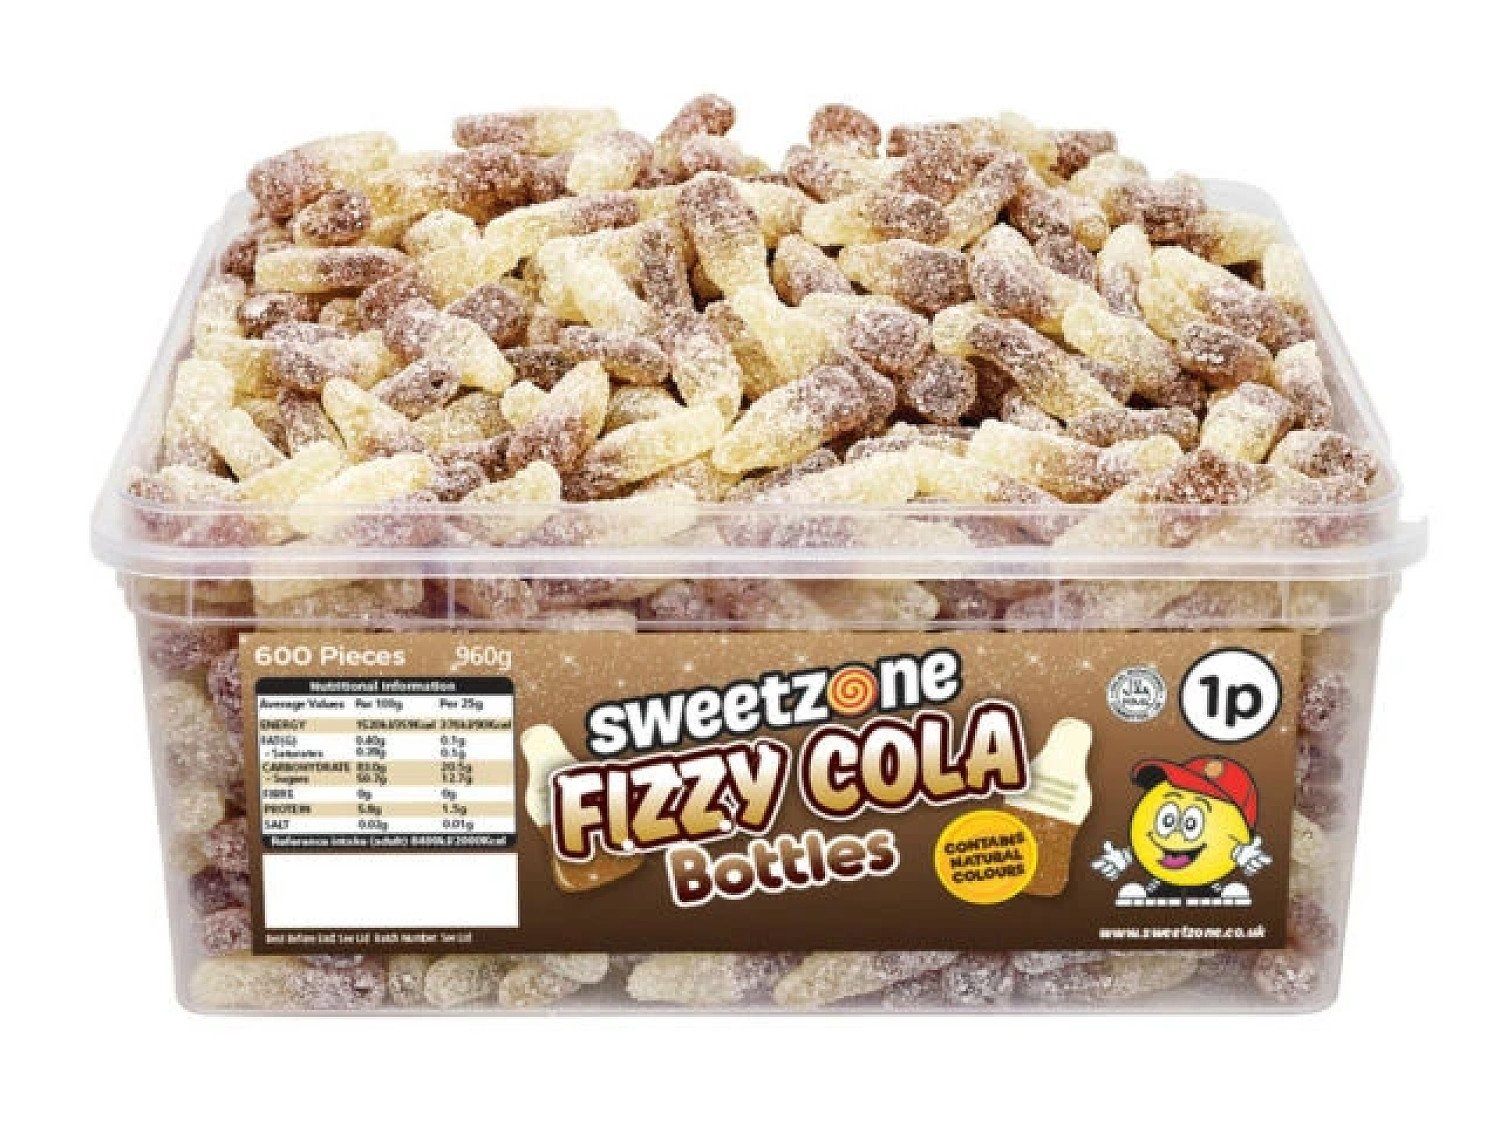 FIZZY COLA BOTTLES TUB (SWEETZONE) 600 COUNT Free Postage